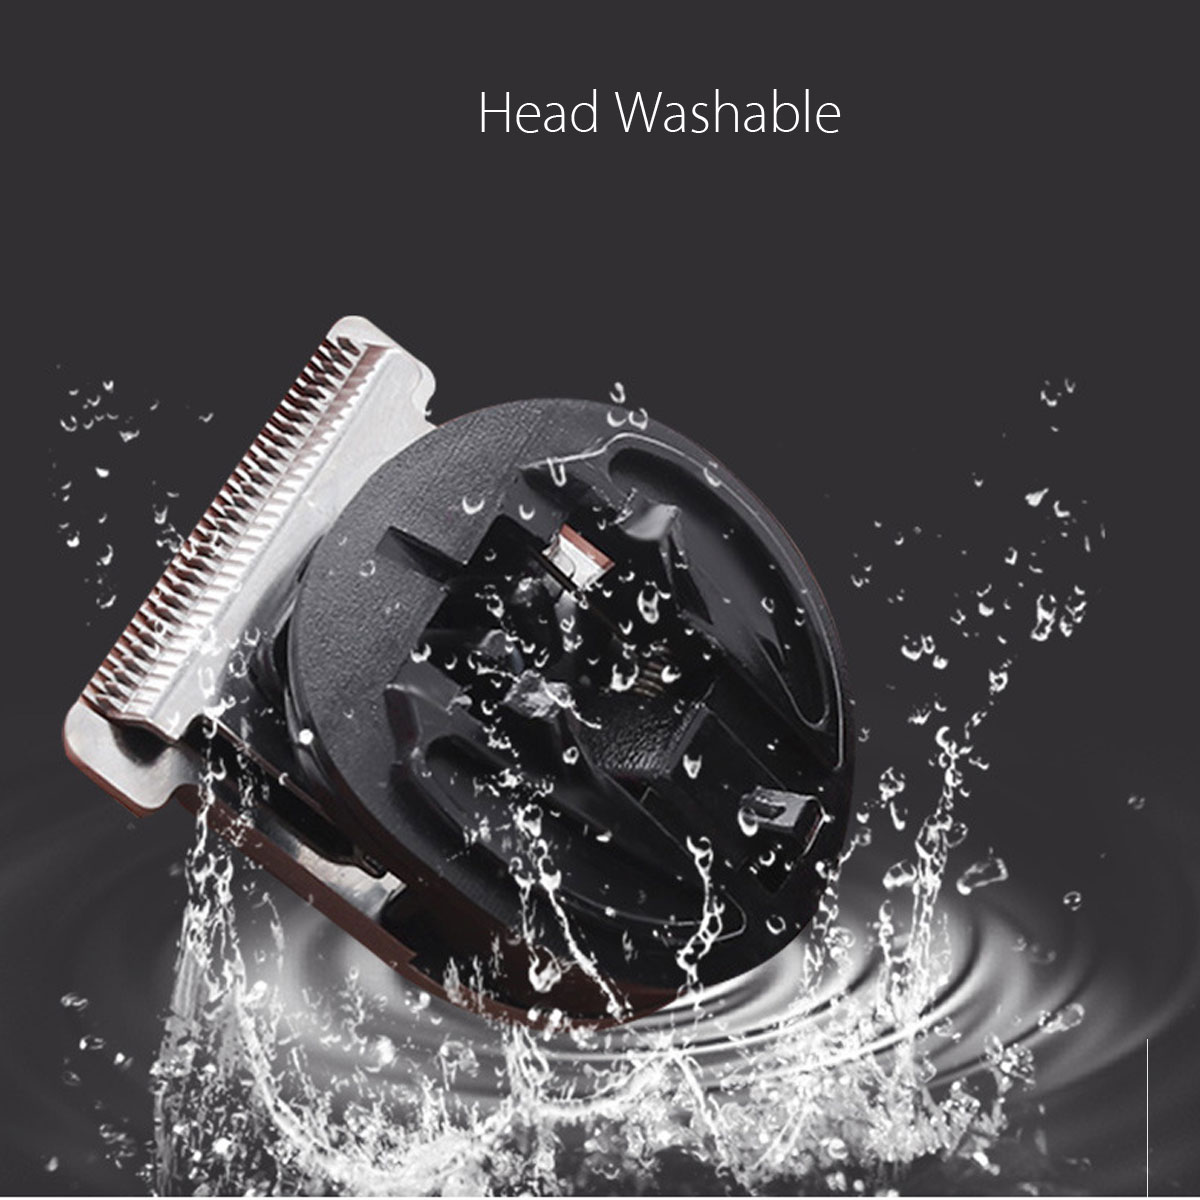 KEMEI All in1 Rechargeable Hair Clipper for Men Waterproof Wireless Electric Shaver Beard Nose Ear Shaver Hair Trimmer Tool 1